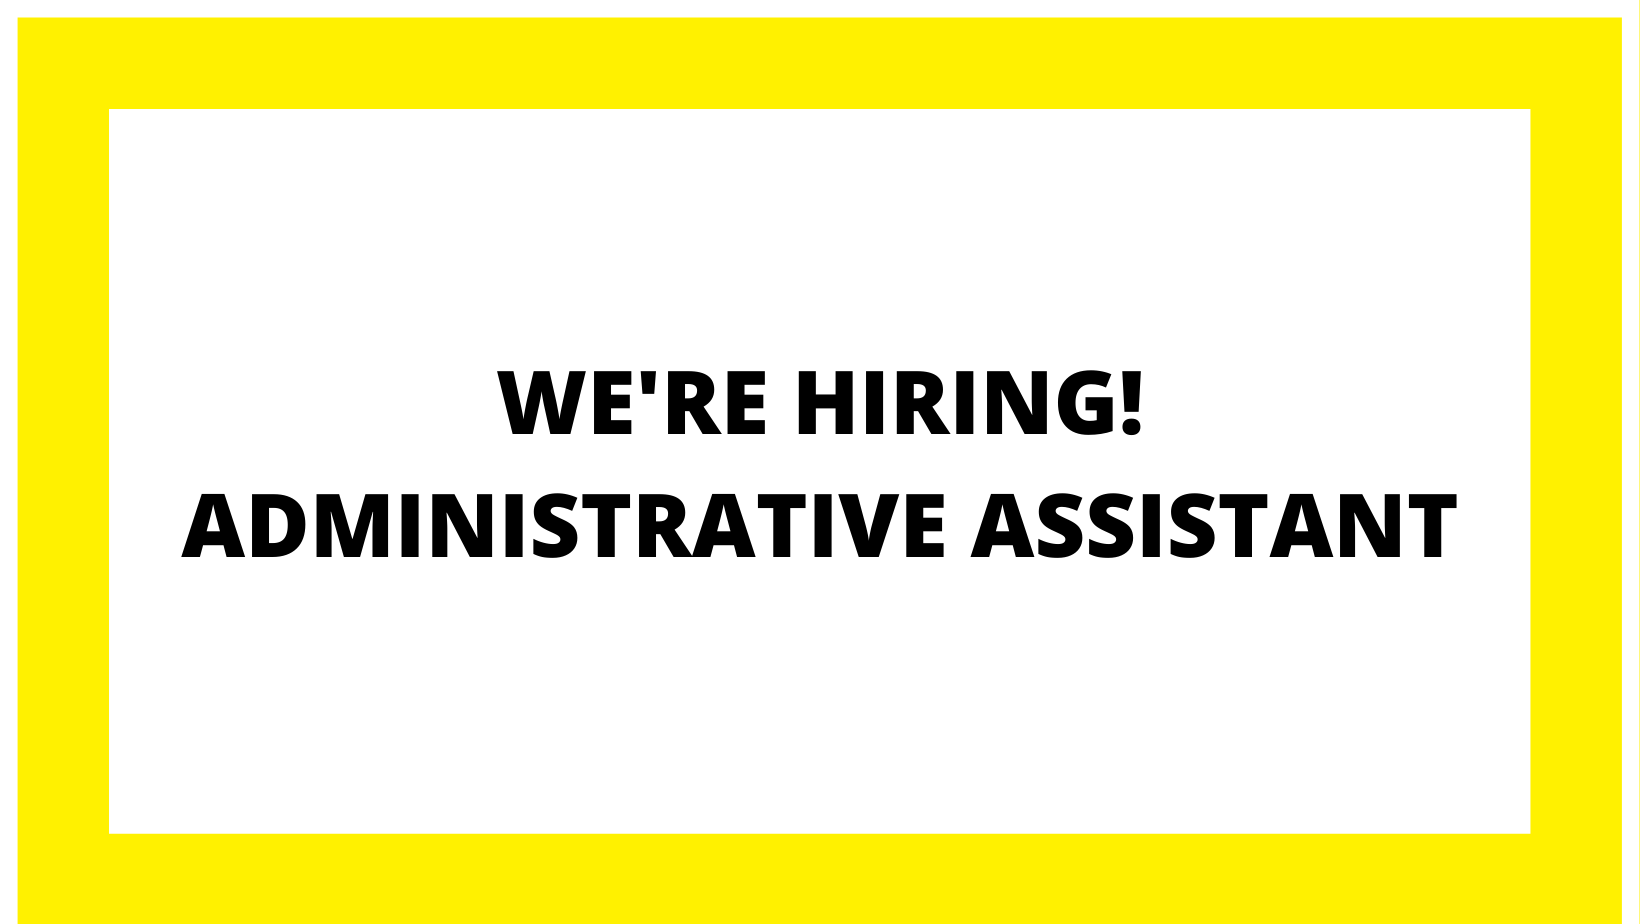 WE'RE HIRING! ADMINISTRATIVE ASSISTANT